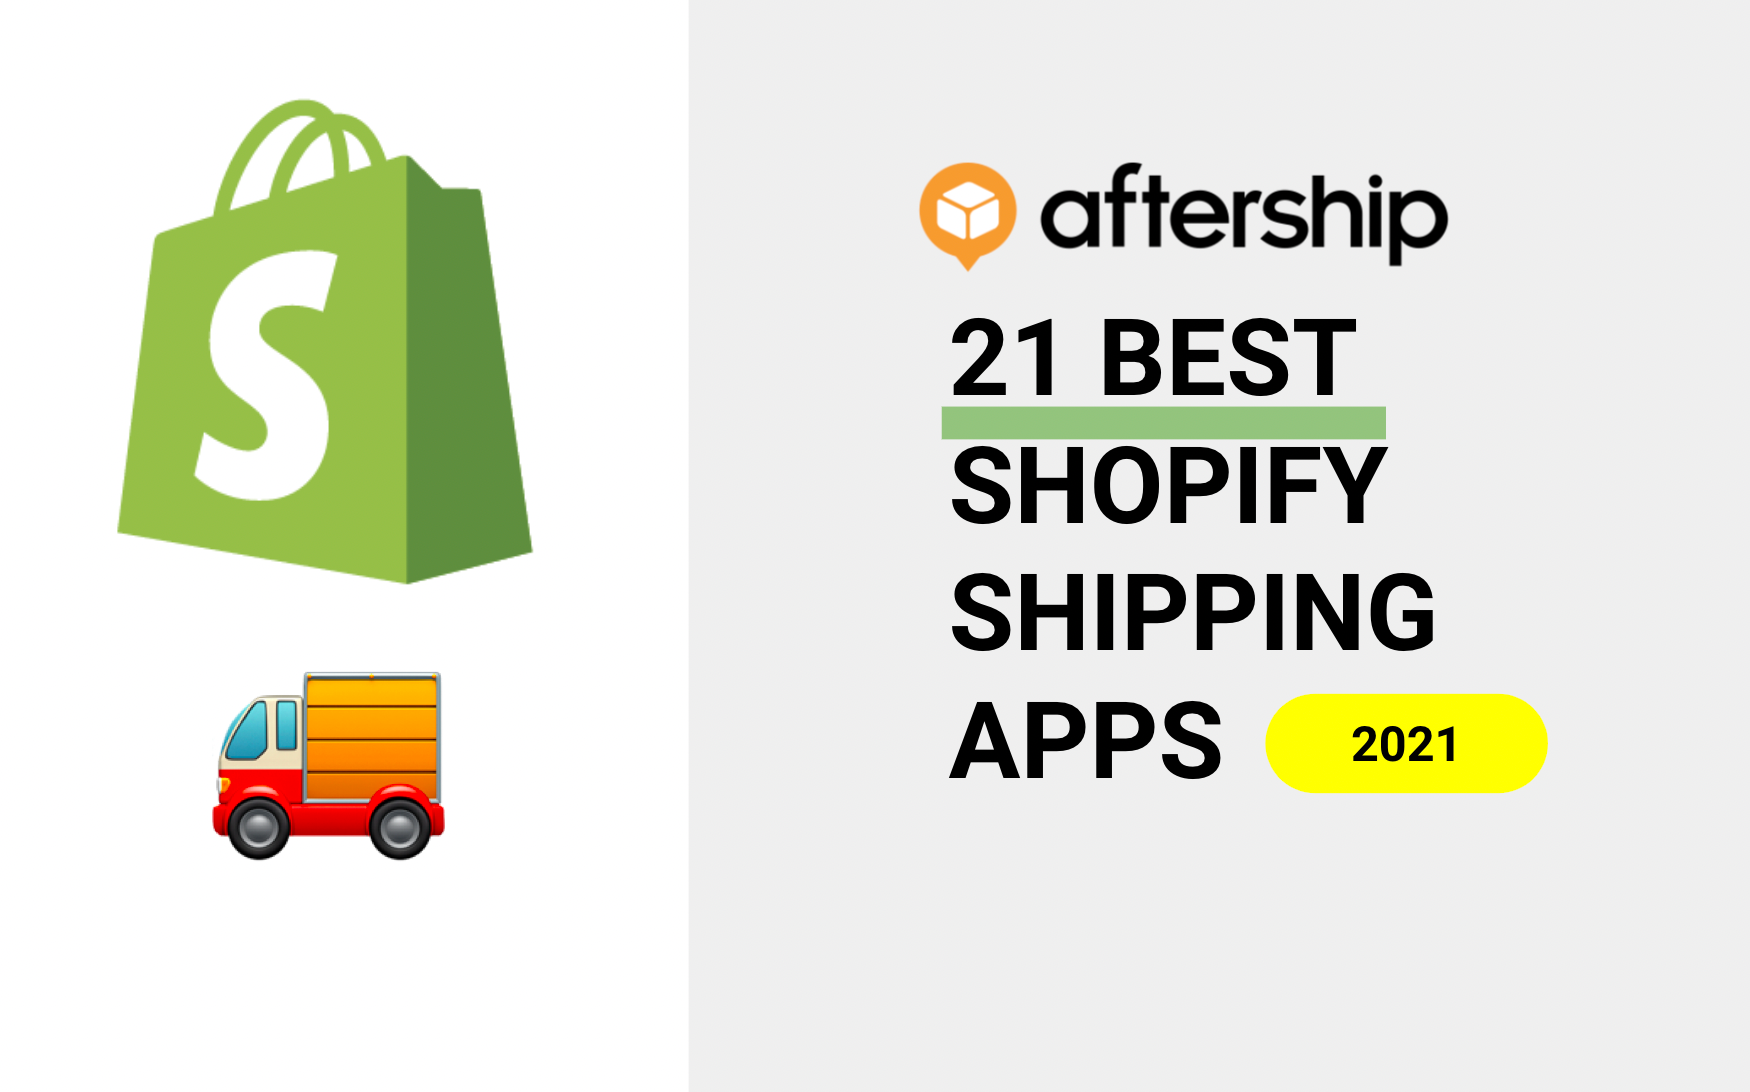 21 Best Shopify Shipping Apps For Your Business (2021)